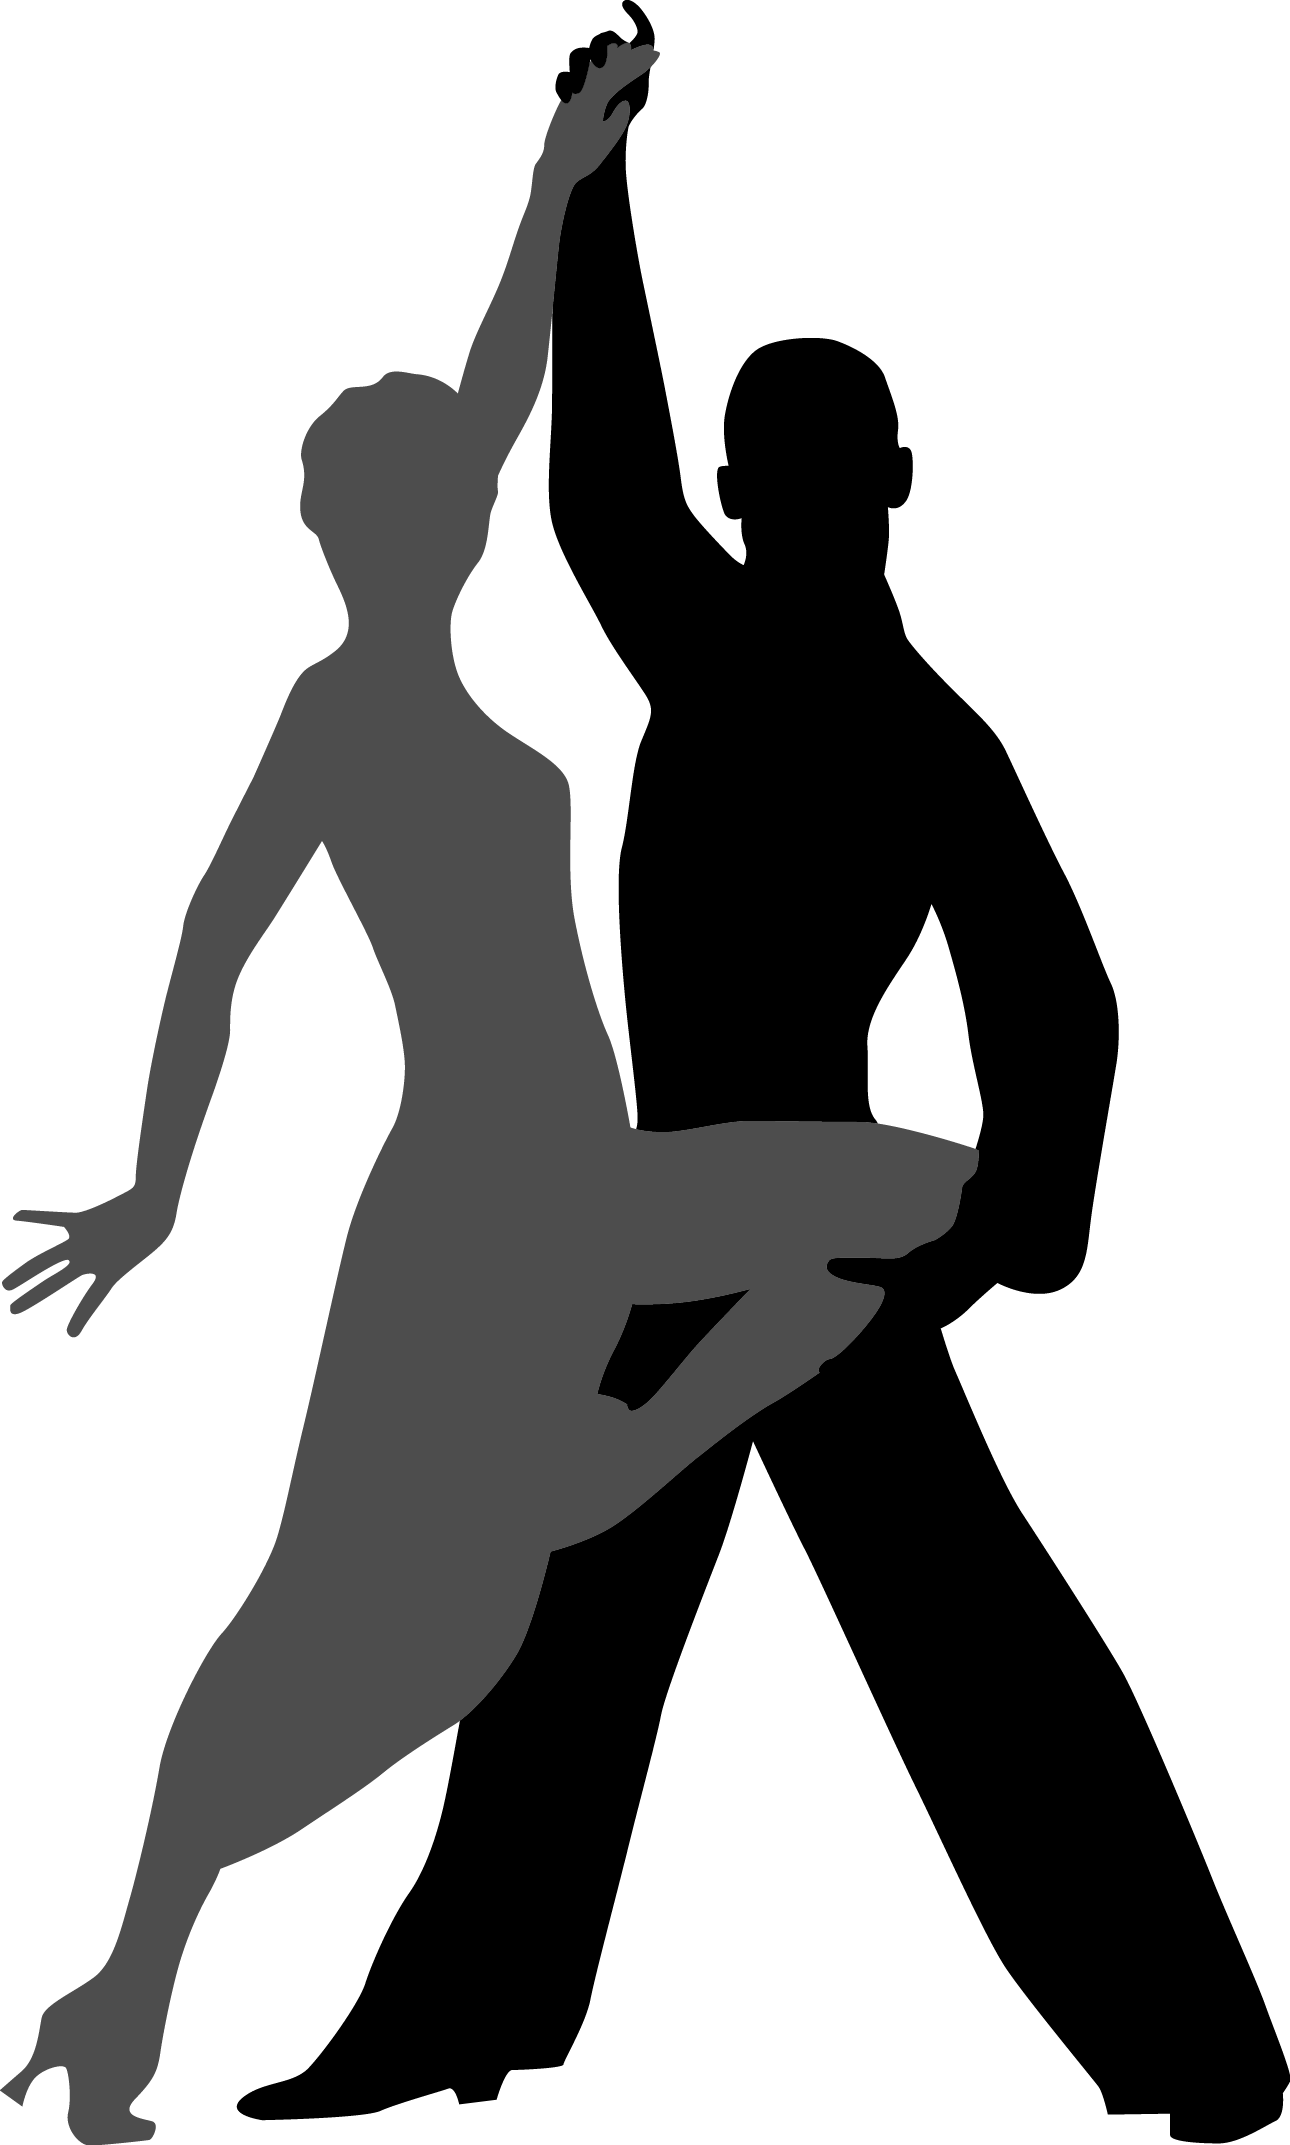 banner royalty free library Dancing transprent png free. Drawing silhouette dance